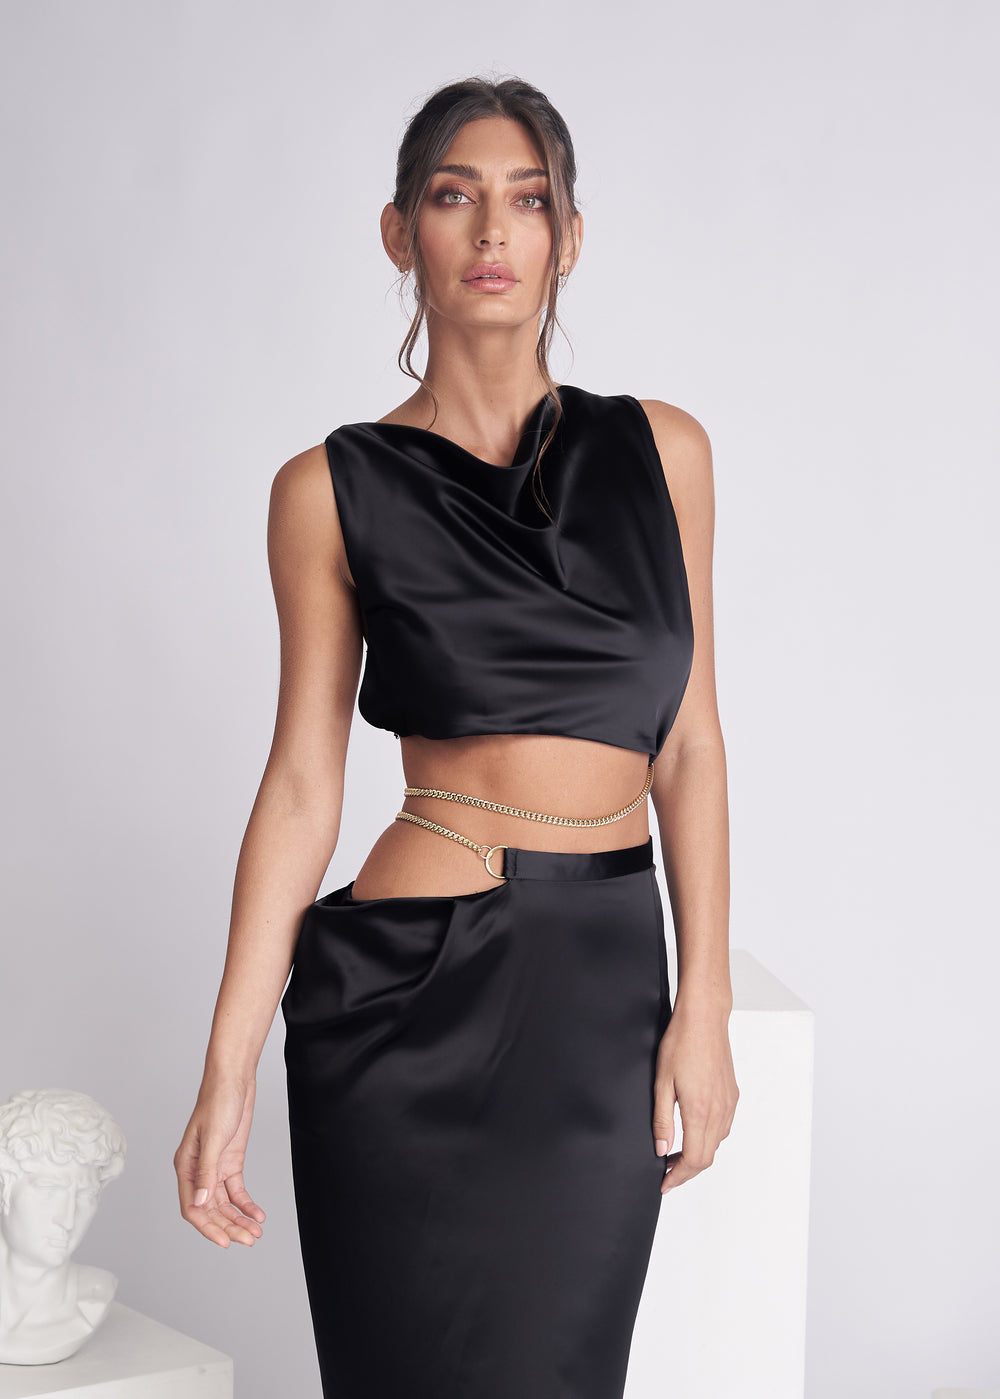 FLIORA TOP - BLACK